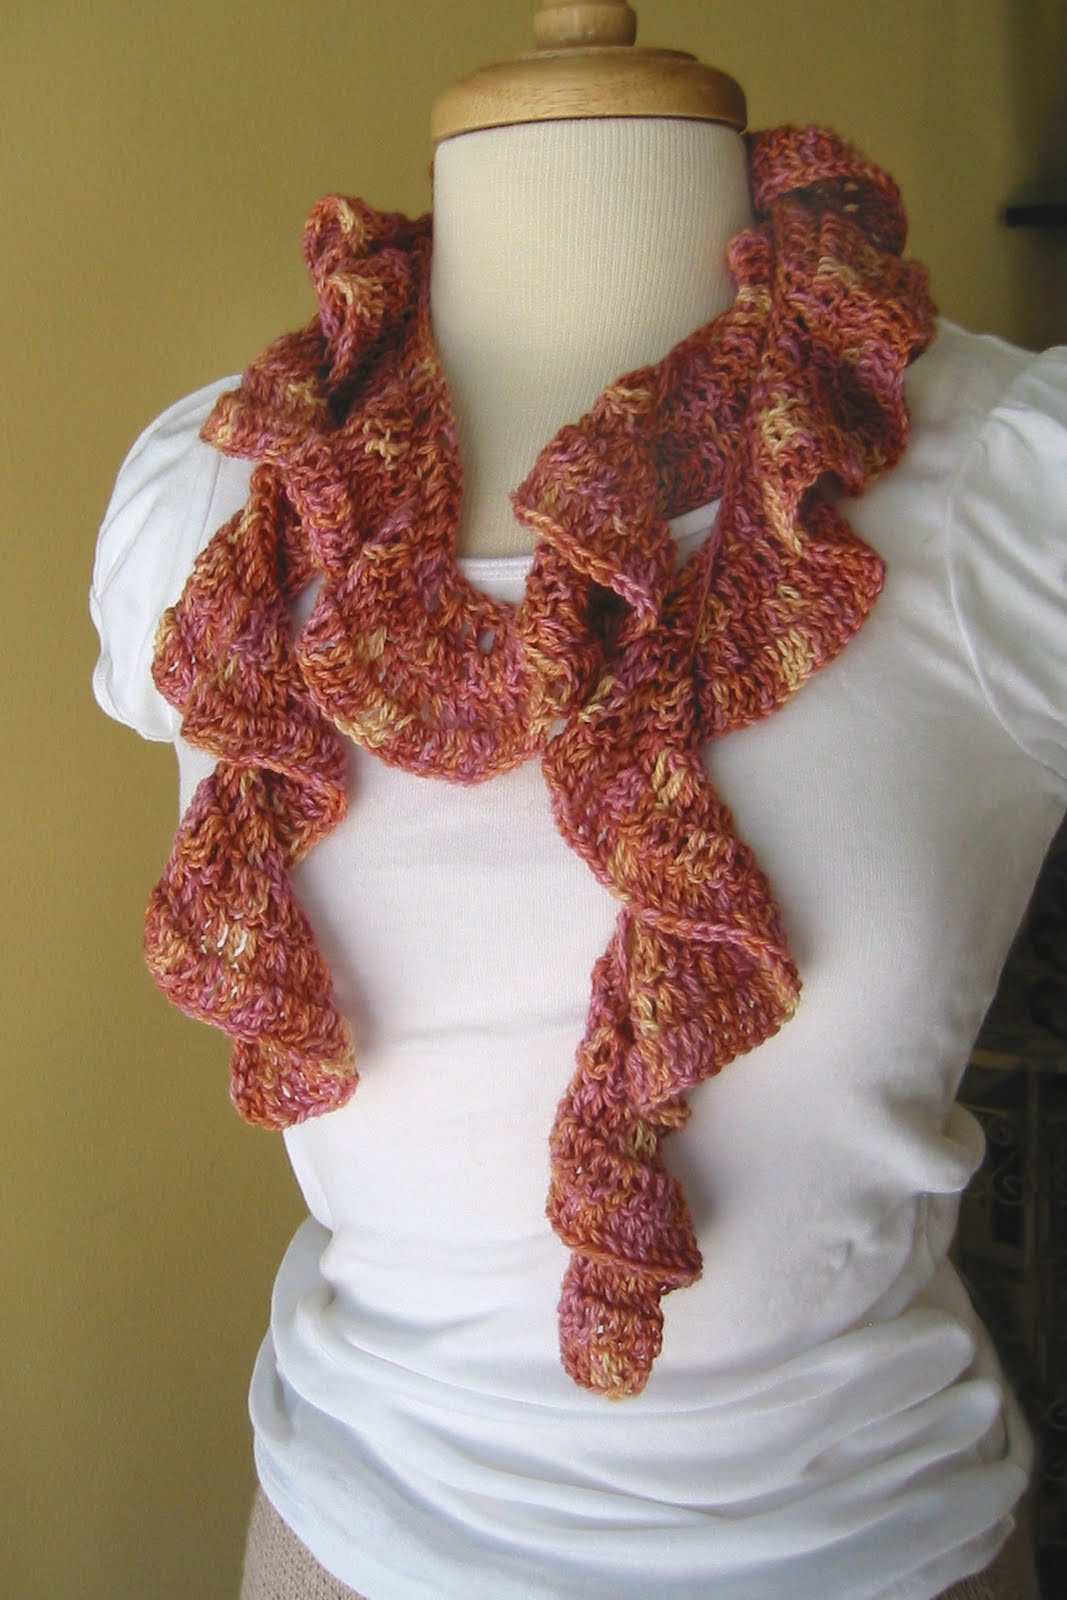 Ruffle Spiral Crochet Scarf Pattern Easy Crochet Patterns